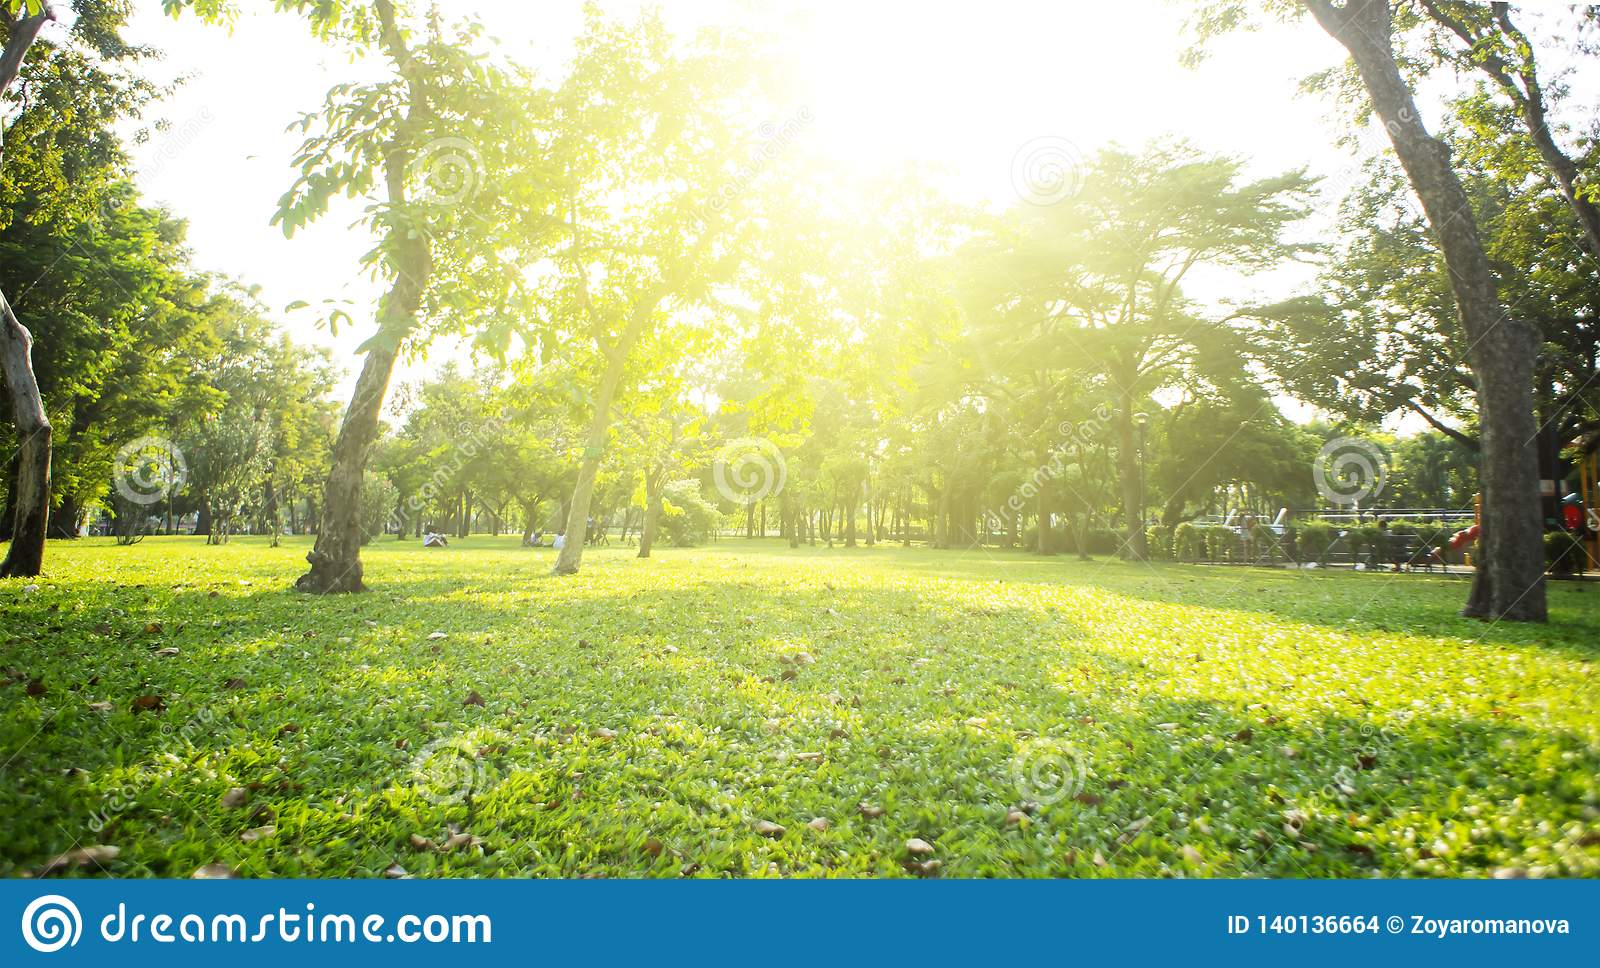 Park With Bright Grass And Trees Sun Glare Relaxing Fitness Background Spring Summer Wallpaper Low Angle Stock Photo Image Of Sunlight Natural 140136664